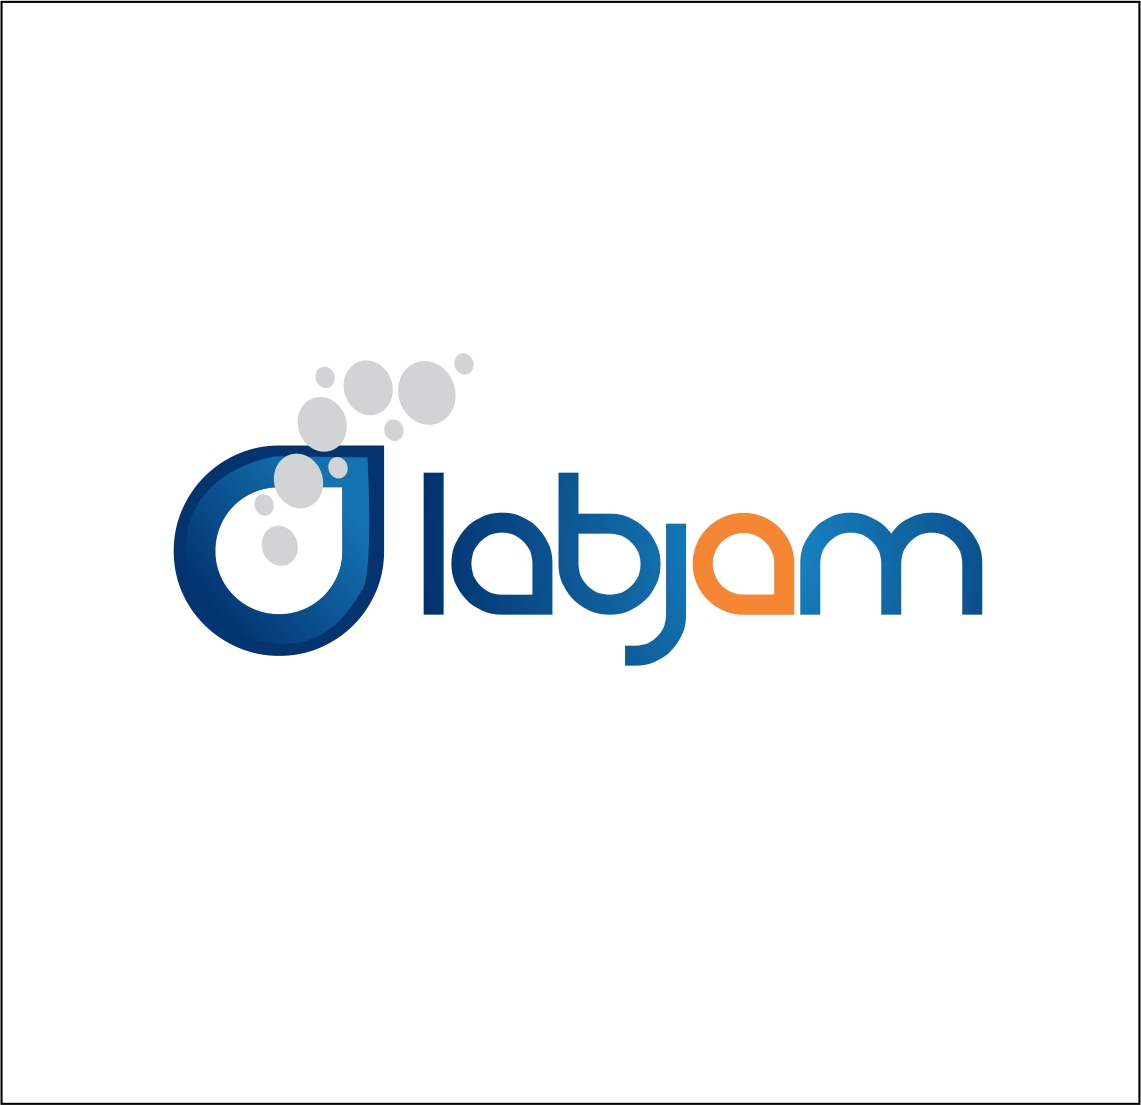 Logo Design by arkvisdesigns - Entry No. 197 in the Logo Design Contest Labjam.